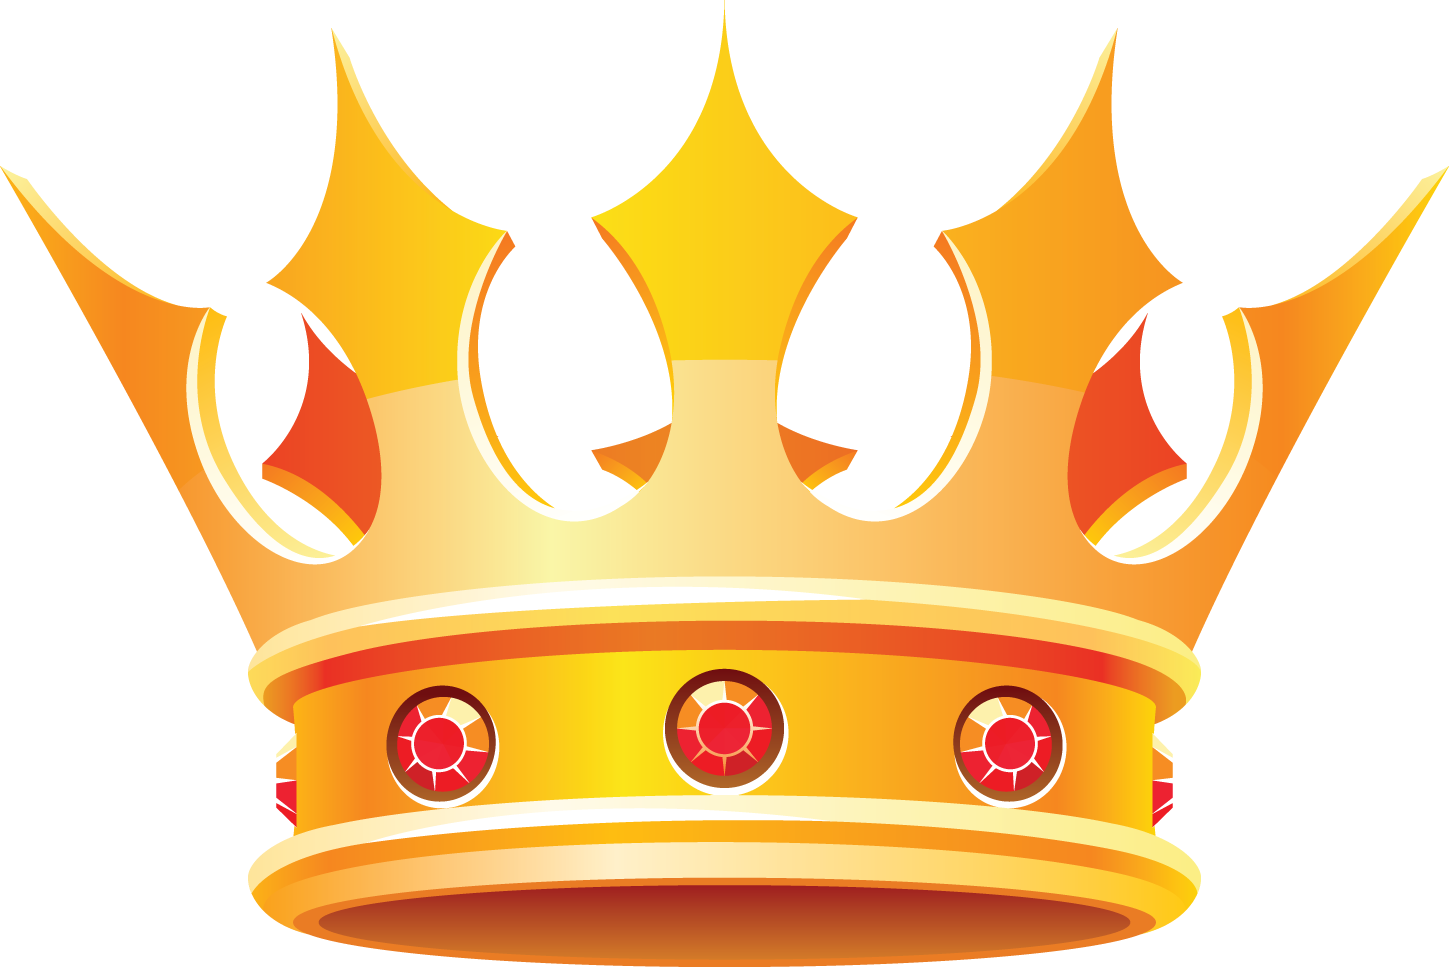 Free download on clipart. Crown clip art king